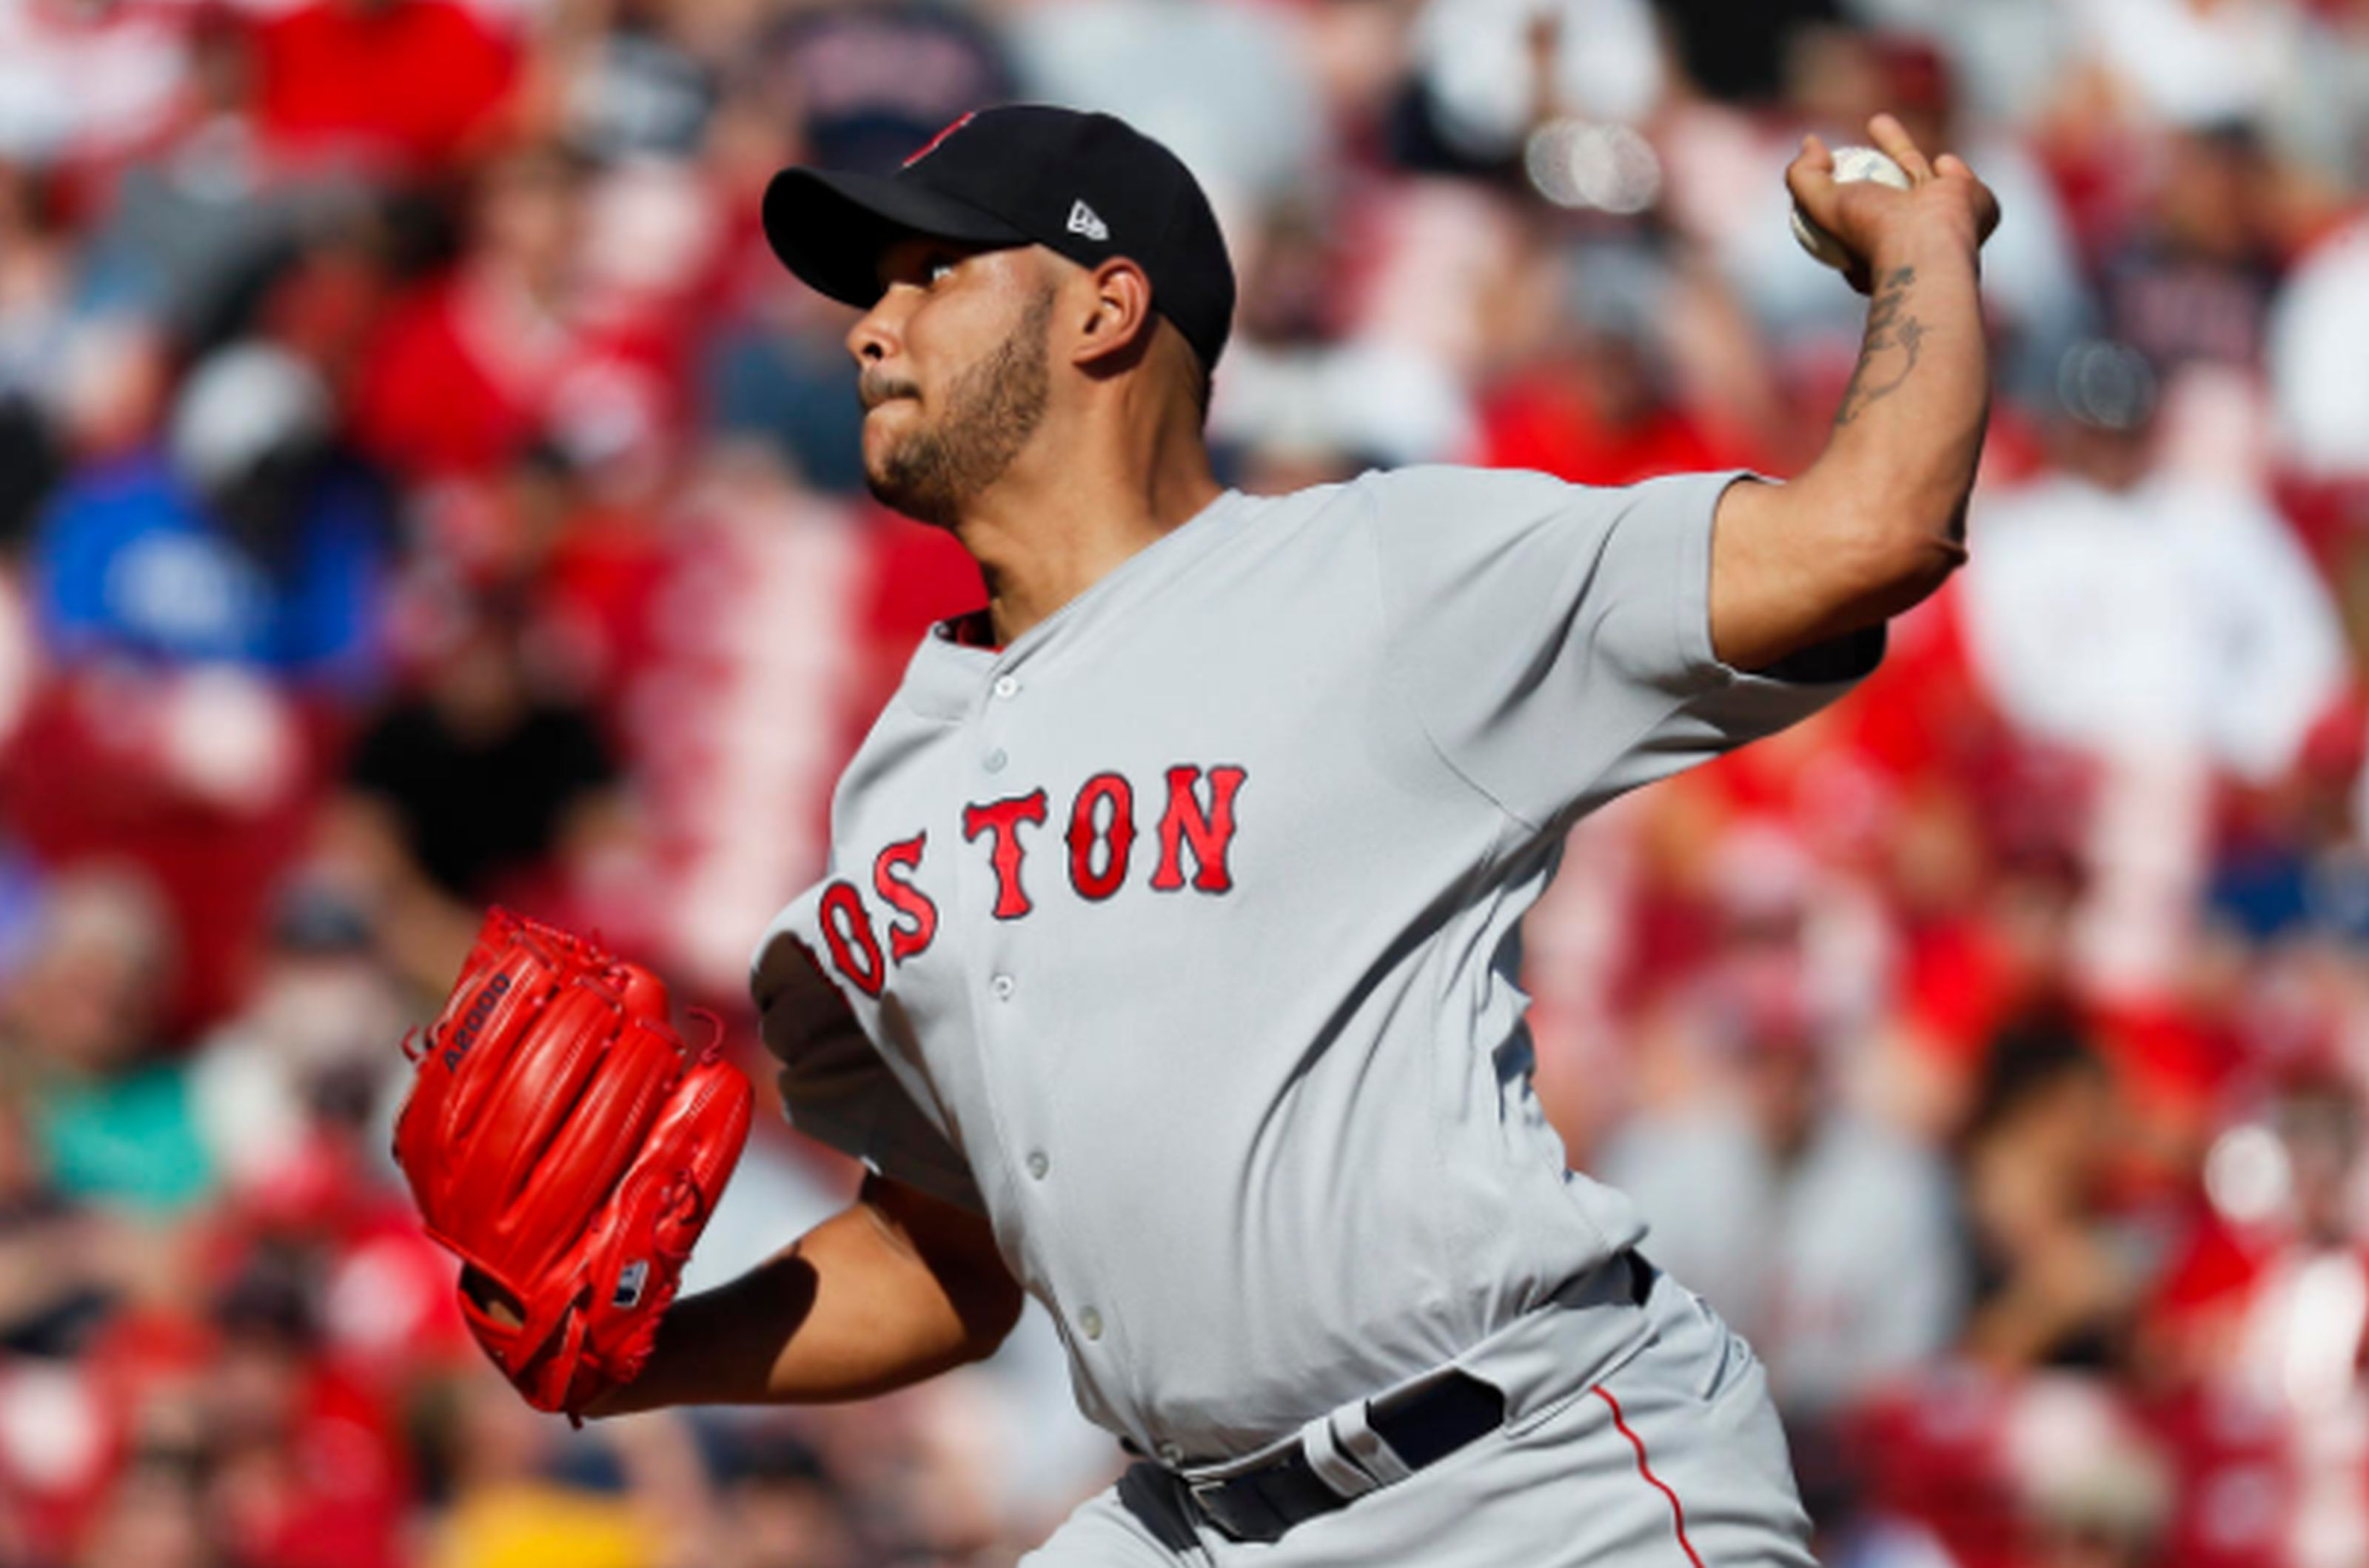 Boston Red Sox starting pitcher Eduardo Rodriguez throws in the first inning of a baseball game against the Cincinnati Reds, Saturday, Sept. 23, 2017, in Cincinnati. AP NEWSWIRE/John Minchillo